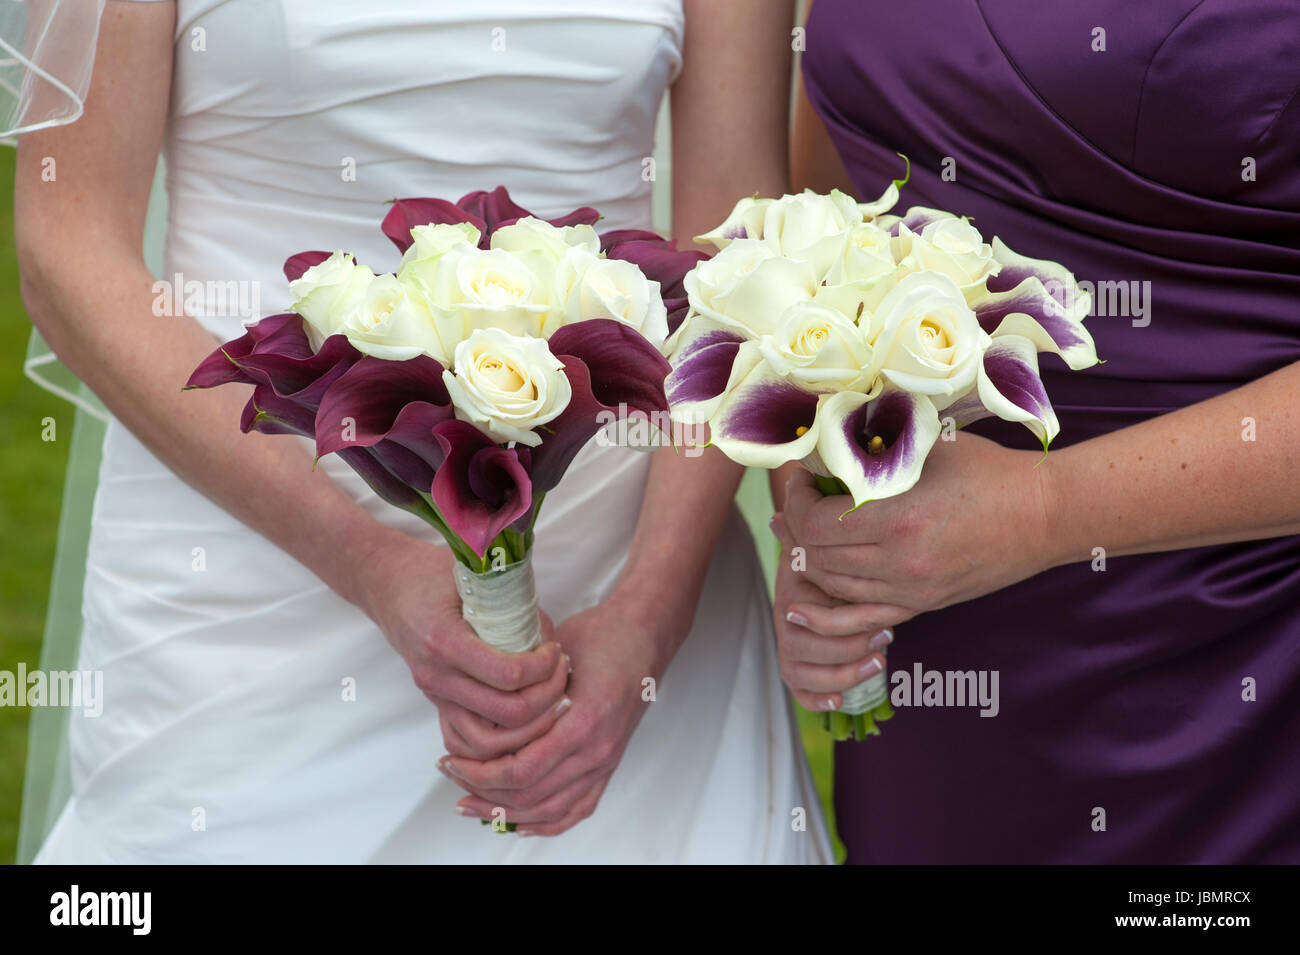 Bride And Bridesmaid Holding Purple And White Wedding Bouquets Stock